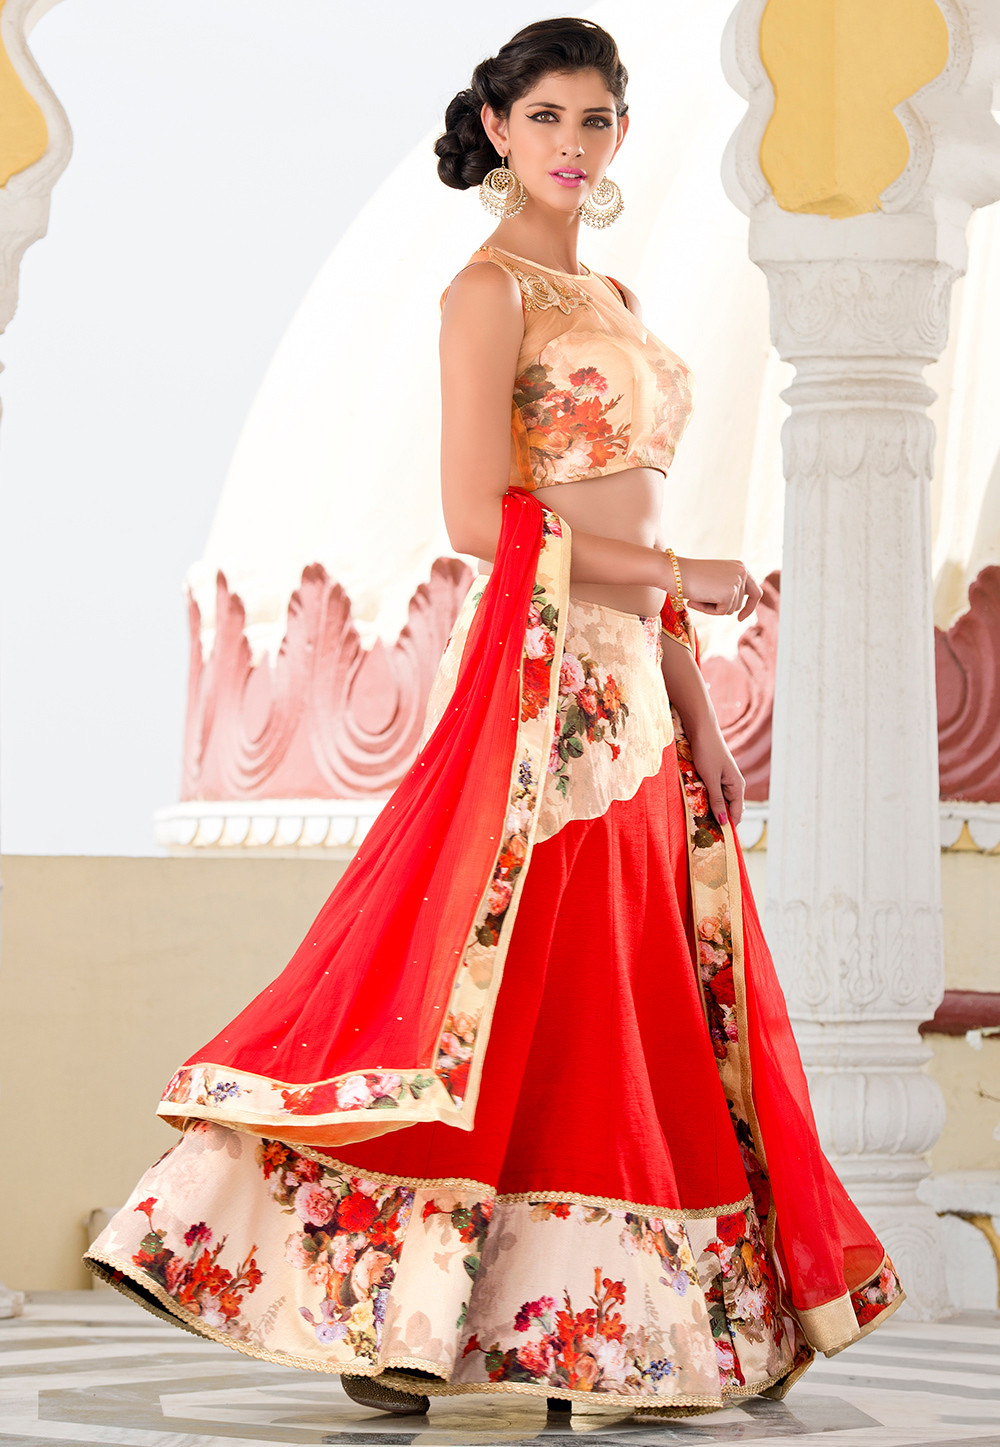 f7fbfaa2f378 Indian Lehenga Choli - Its Origin, History And More | Utsavpedia